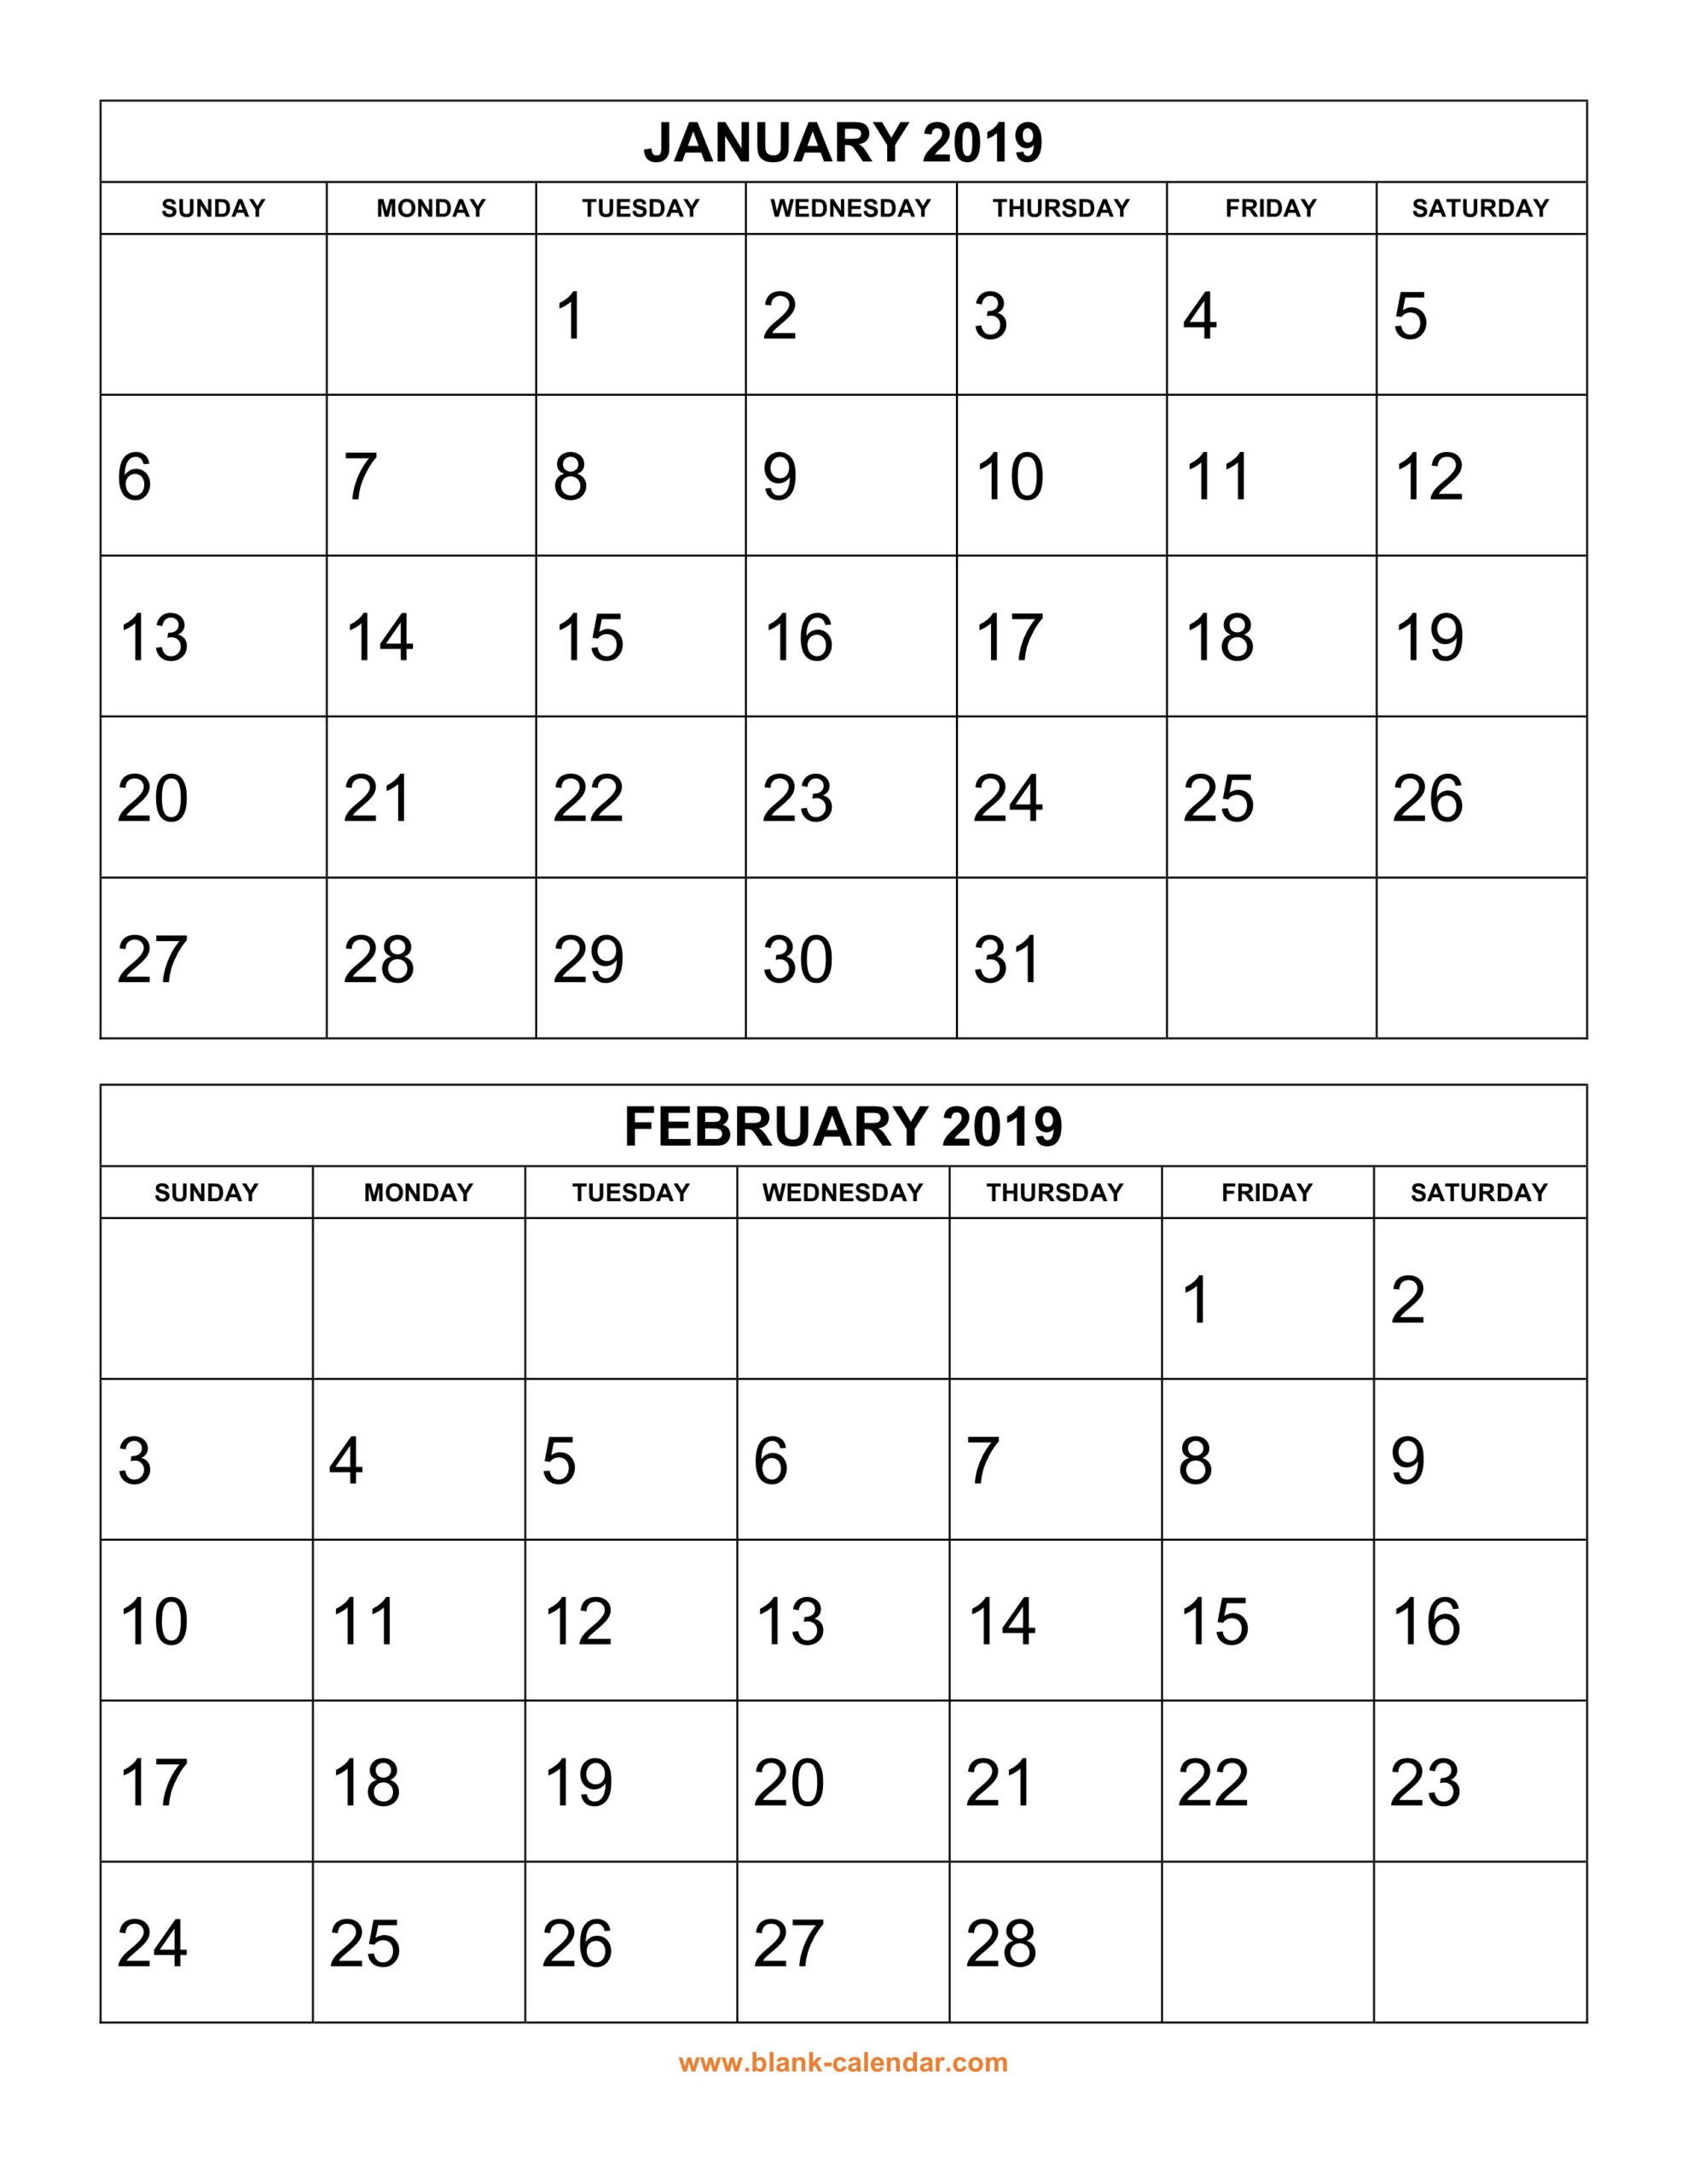 Download Printable Calendar 2019 On 6 Pages, 2 Months Per